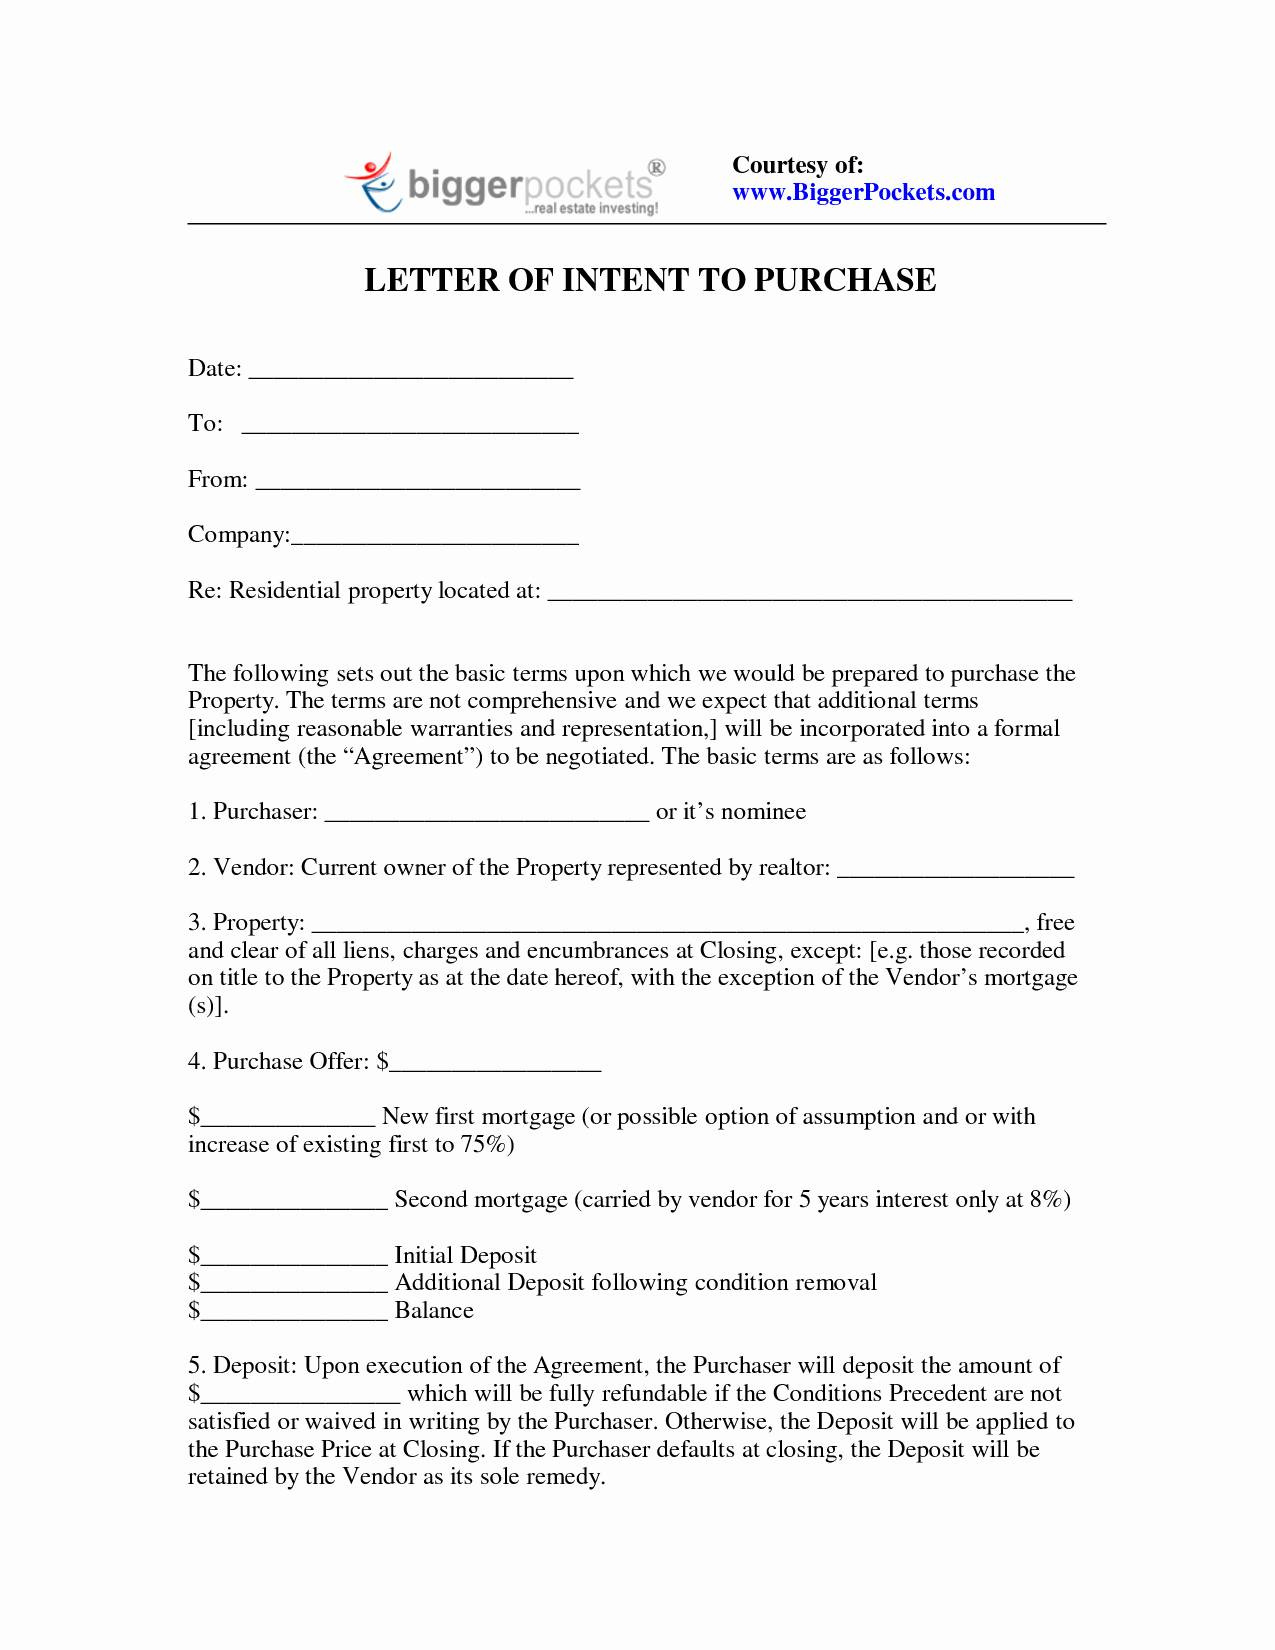 Letter Of Intent to Purchase Real Estate Template - Letter Intent to Purchase Property Template Elegant Letter Tent